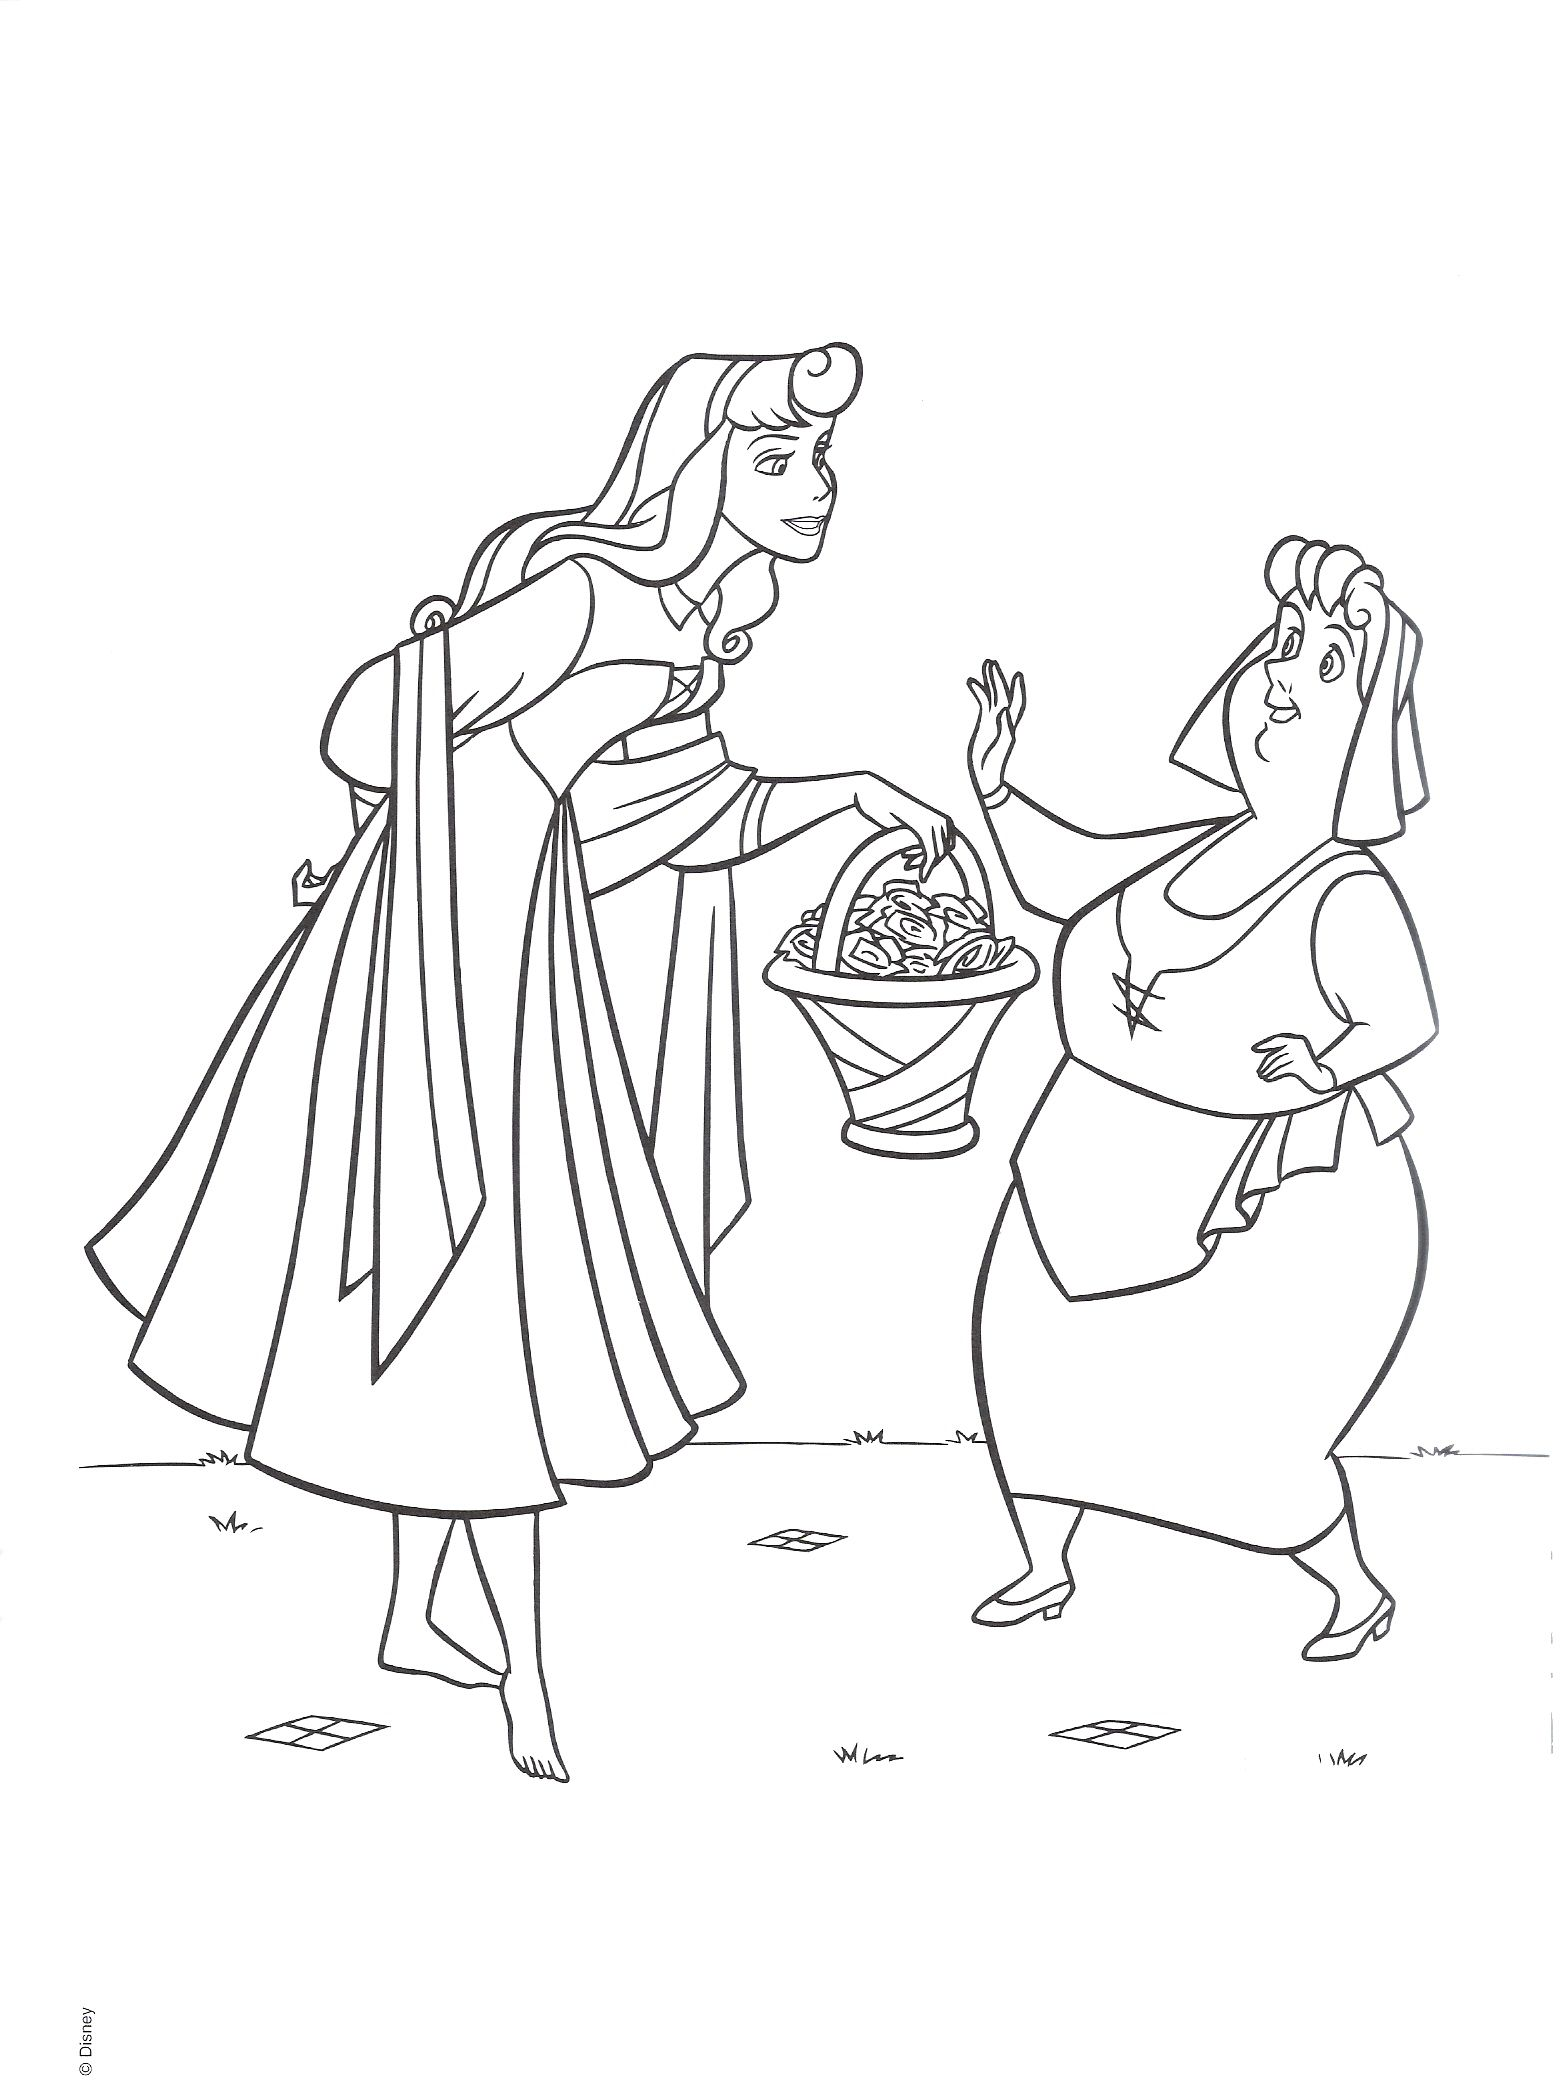 Sleeping Beauty Coloring Page Sleeping beauty coloring